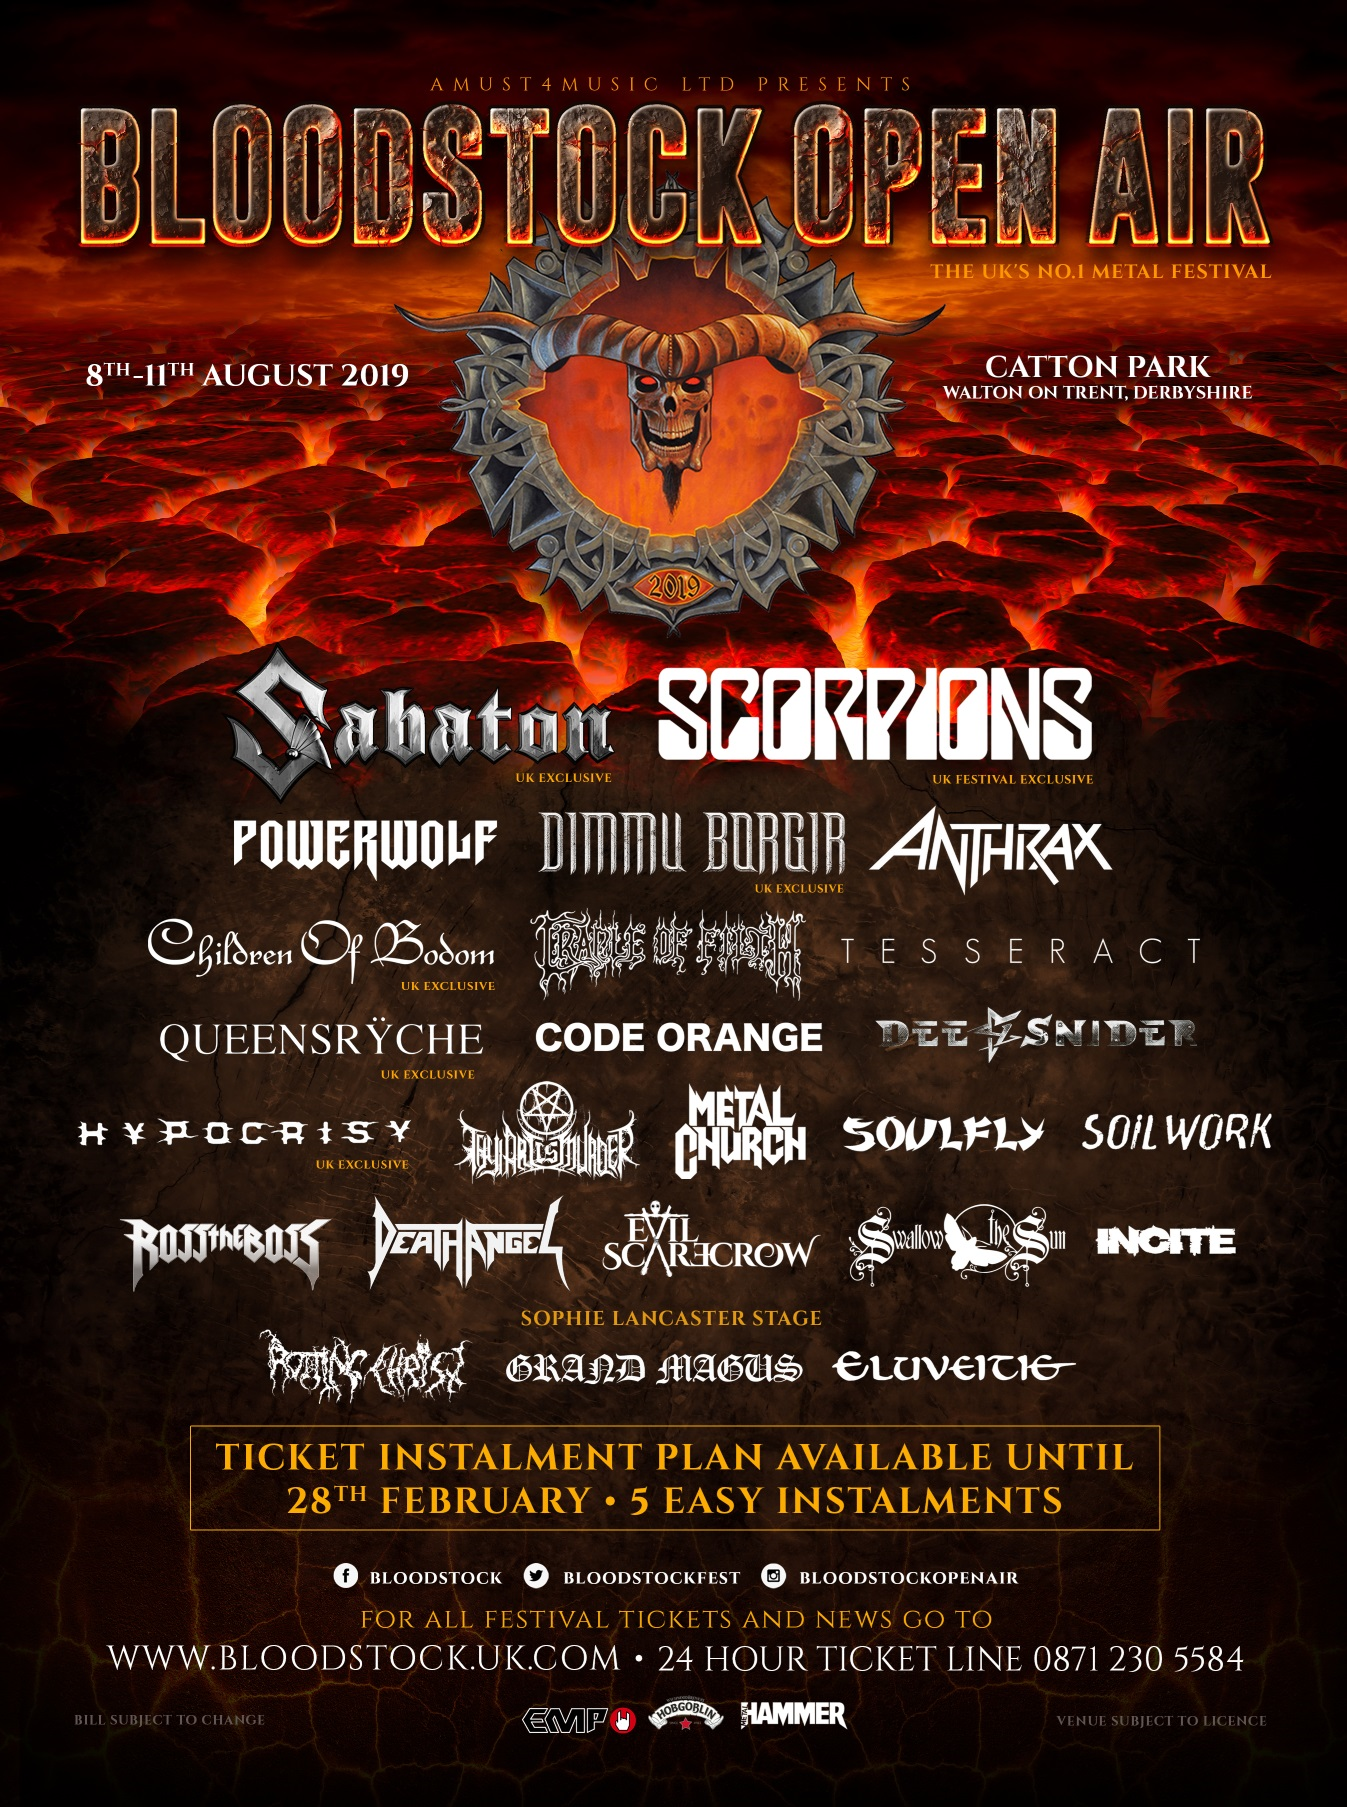 News: Bloodstock Announces Four More Bands To Kick Off 2019